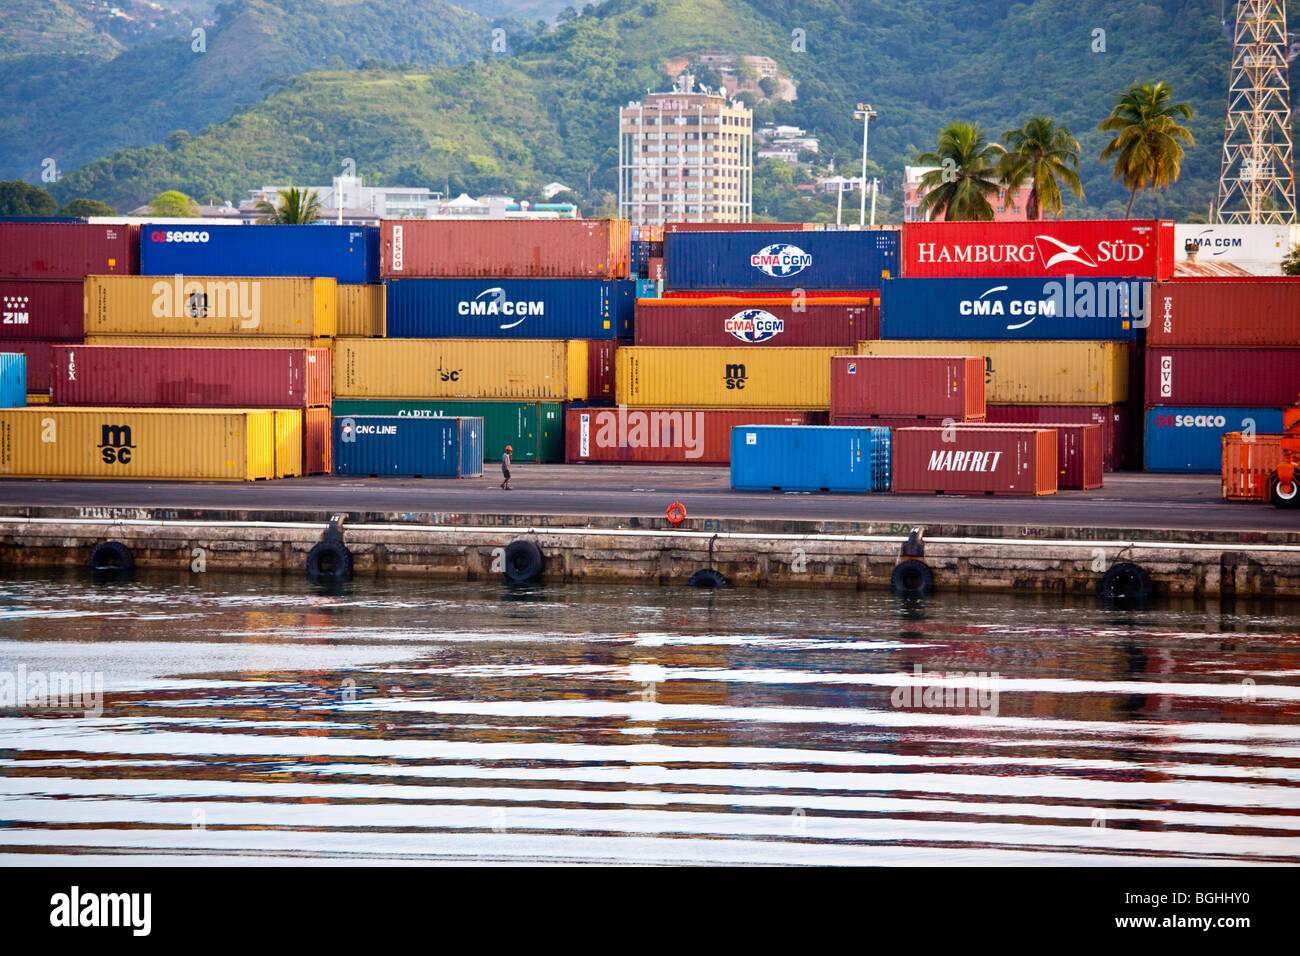 Shipping containers at the port in Port of Spain, Trinidad - Stock Image